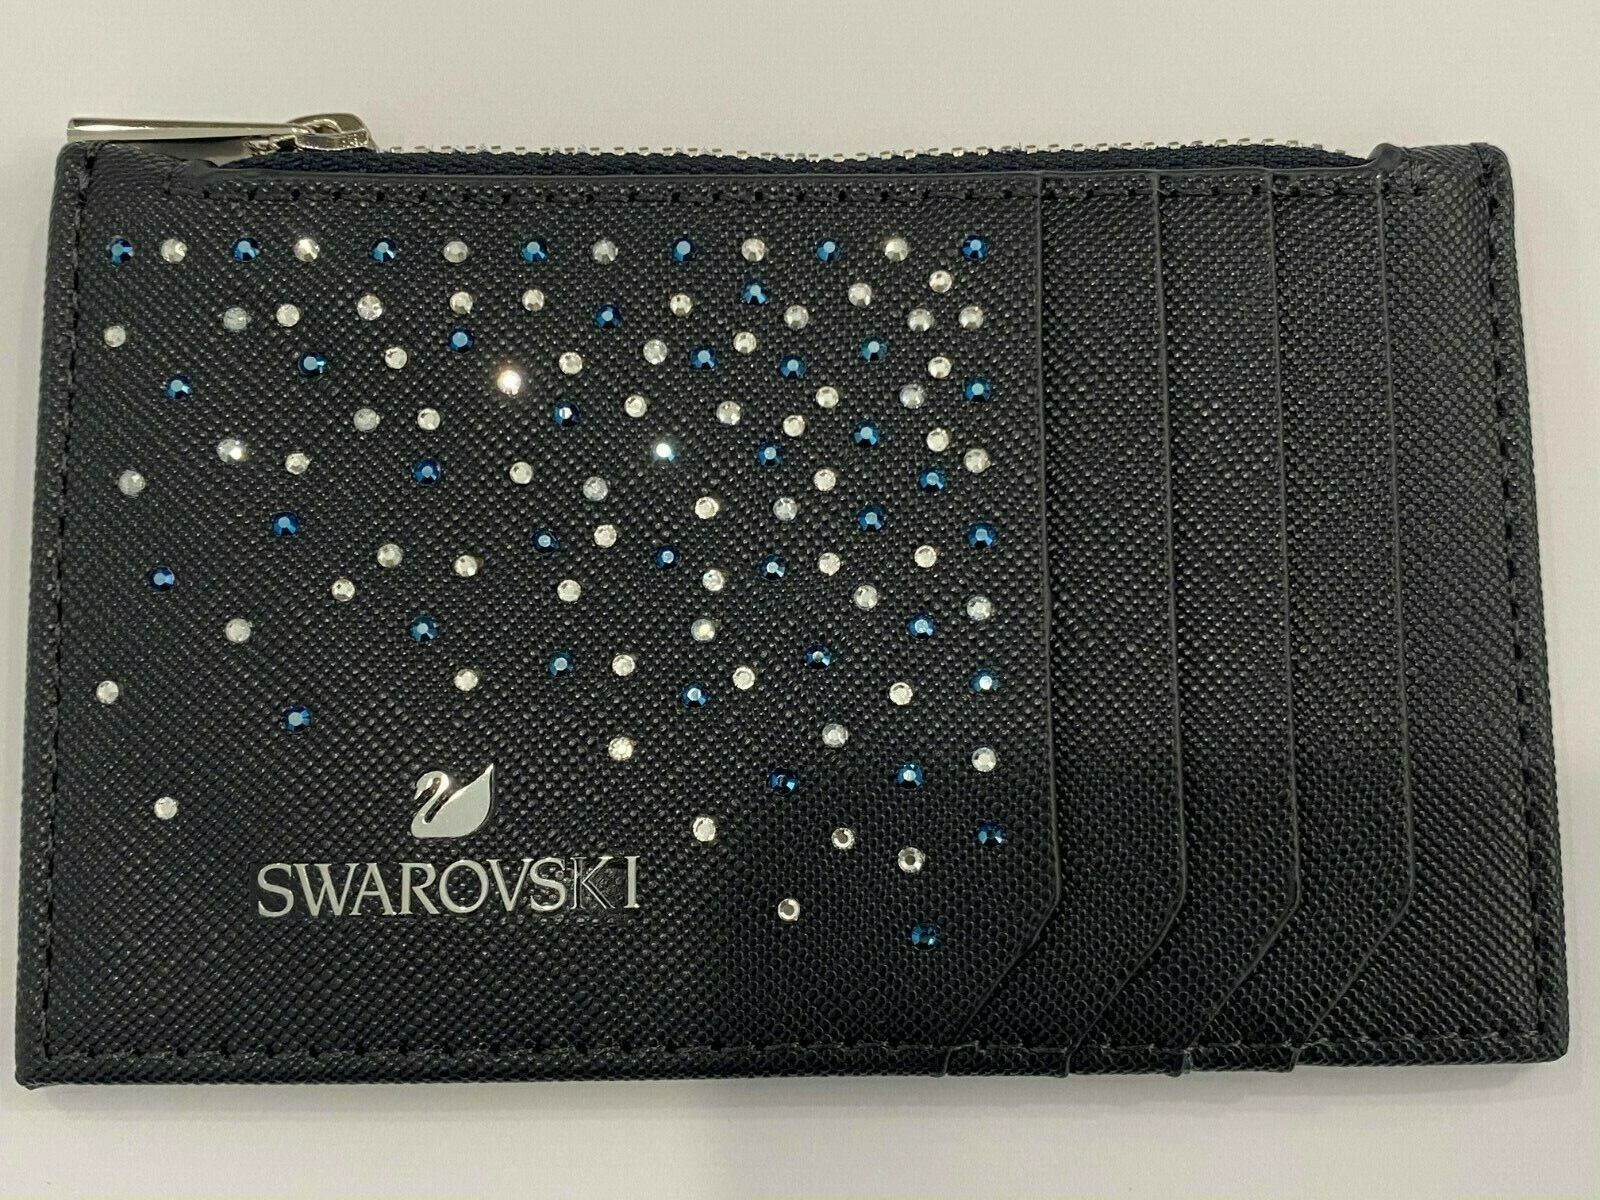 shop swarovski wallets & card holders